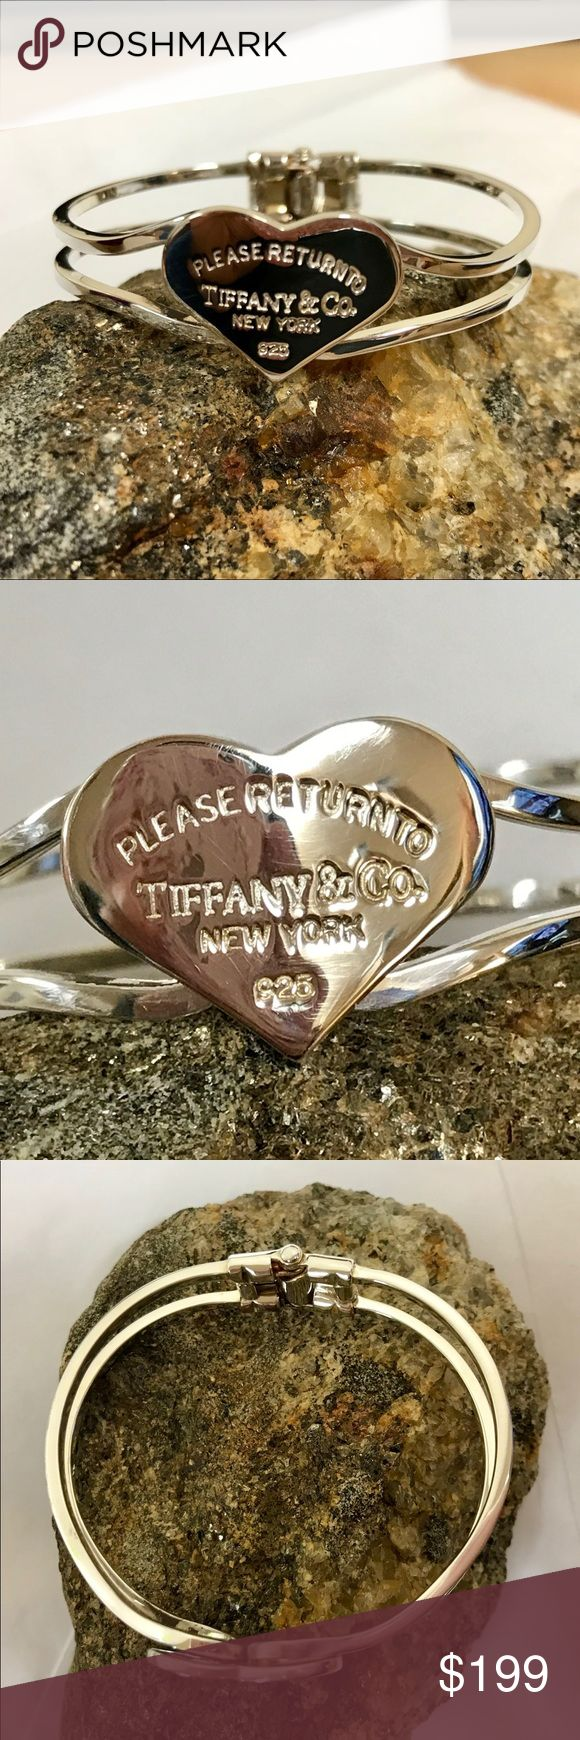 "Please Return to Tiffany & Co. heart bracelet .925 Please Return to Tiffany & Co. heart bracelet .925 spring-hinge closure weight 22.6g 2-2.5"" diameter, apps 8"" circumference Tiffany & Co. Jewelry Bracelets"